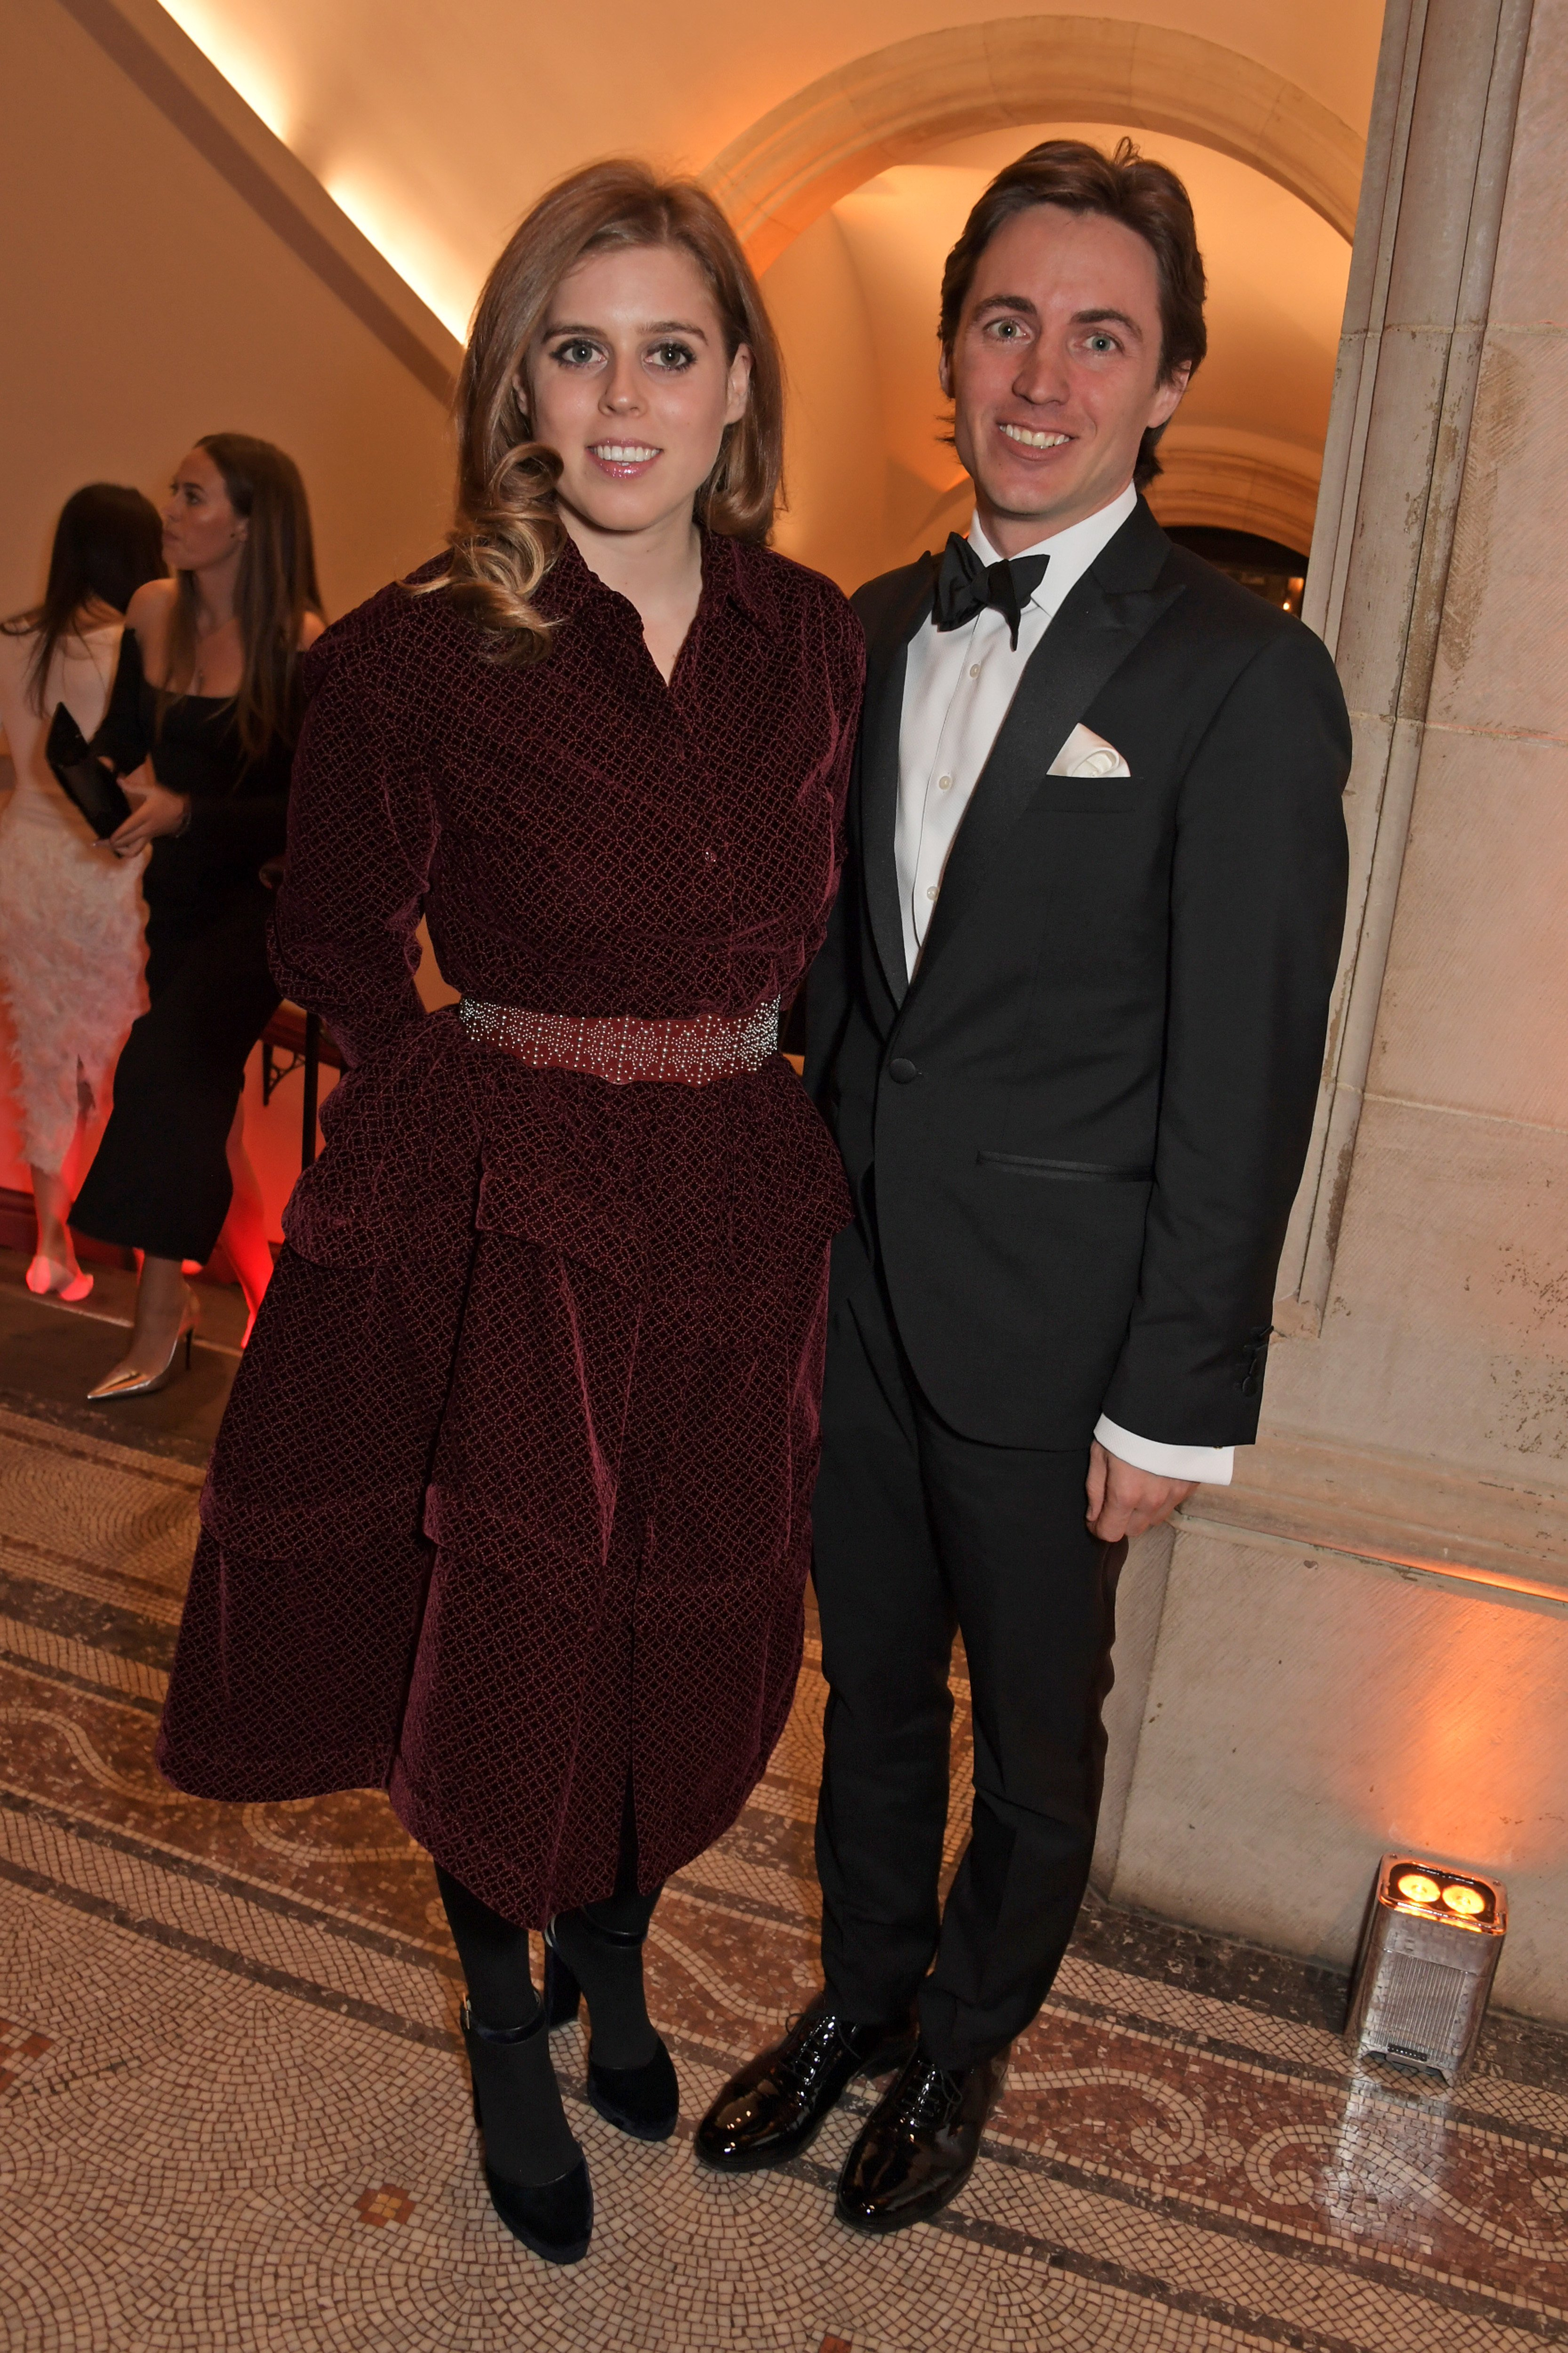 Princess Beatrice of York and Edoardo Mapelli Mozzi attend The Portrait Gala 2019 hosted by Dr Nicholas Cullinan and Edward Enninful to raise funds for the National Portrait Gallery's 'Inspiring People' project at the National Portrait Gallery on March 12, 2019 in London, England.| Source: Getty Images